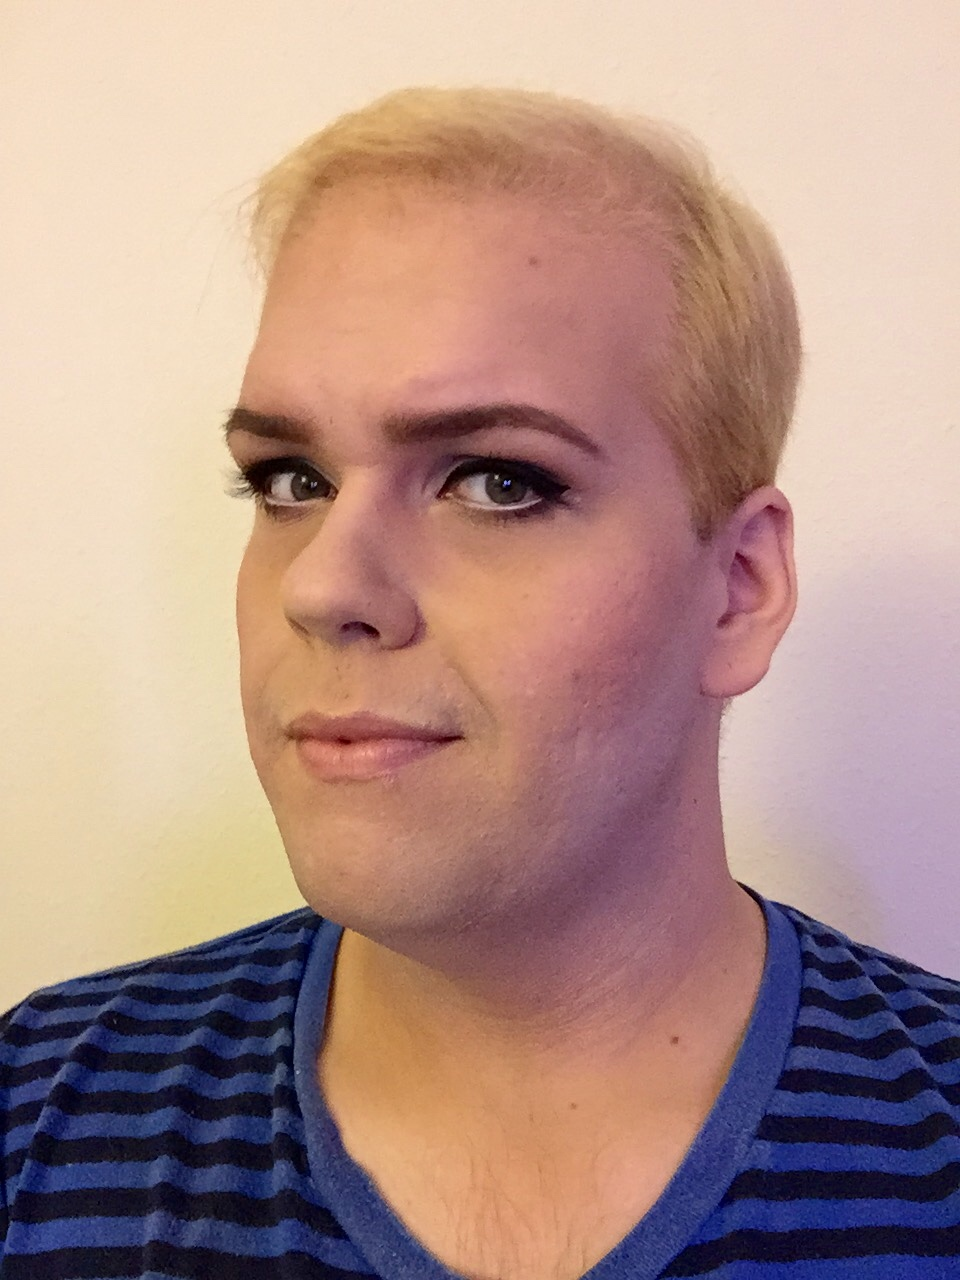 Betty Who Take Me When You Go Album Cover Makeup